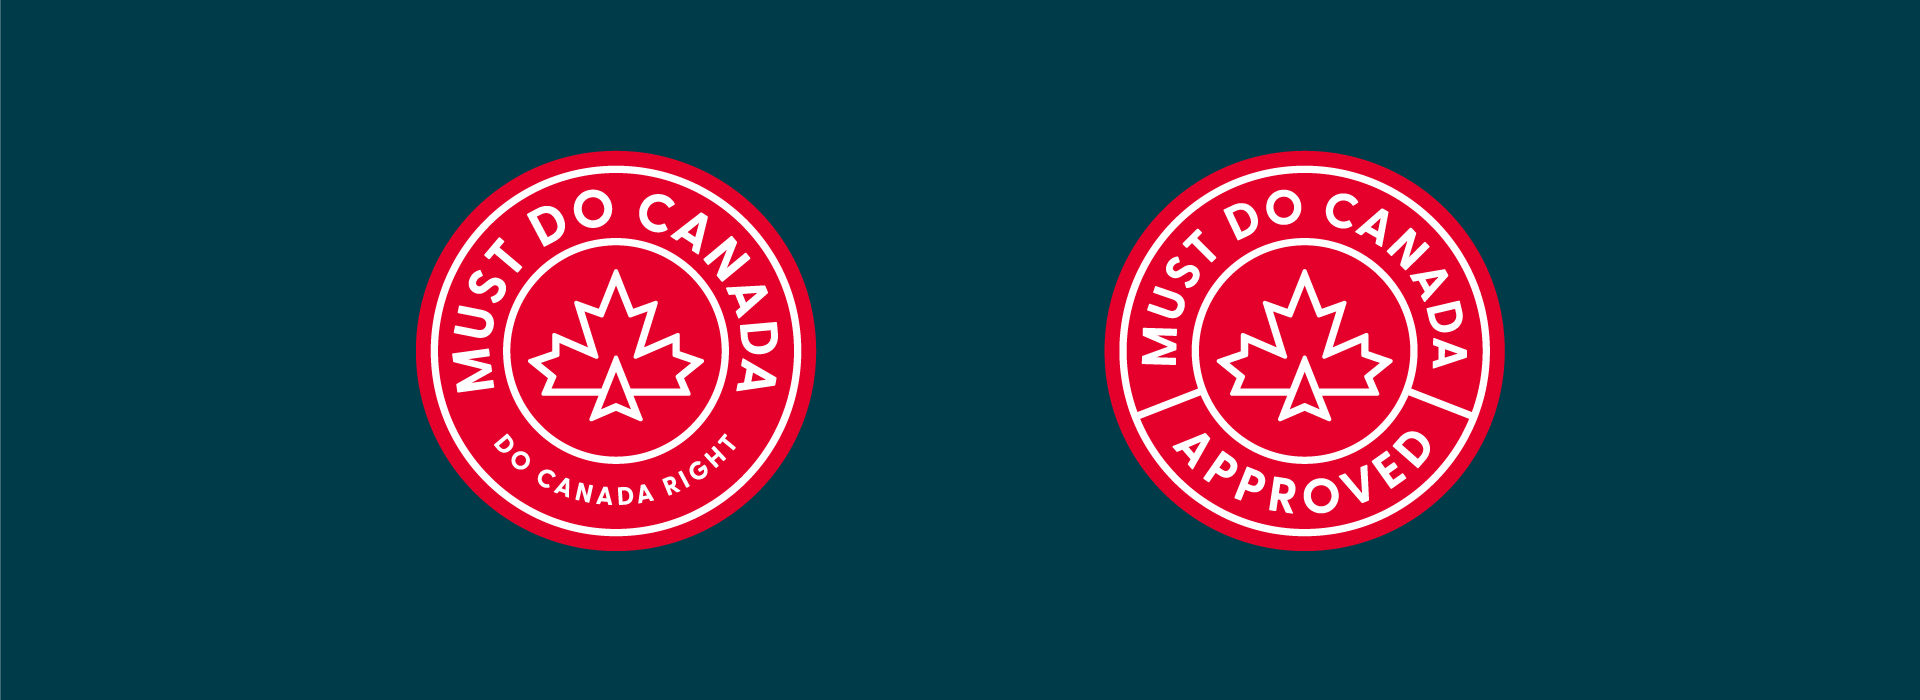 must-do-canada-crests